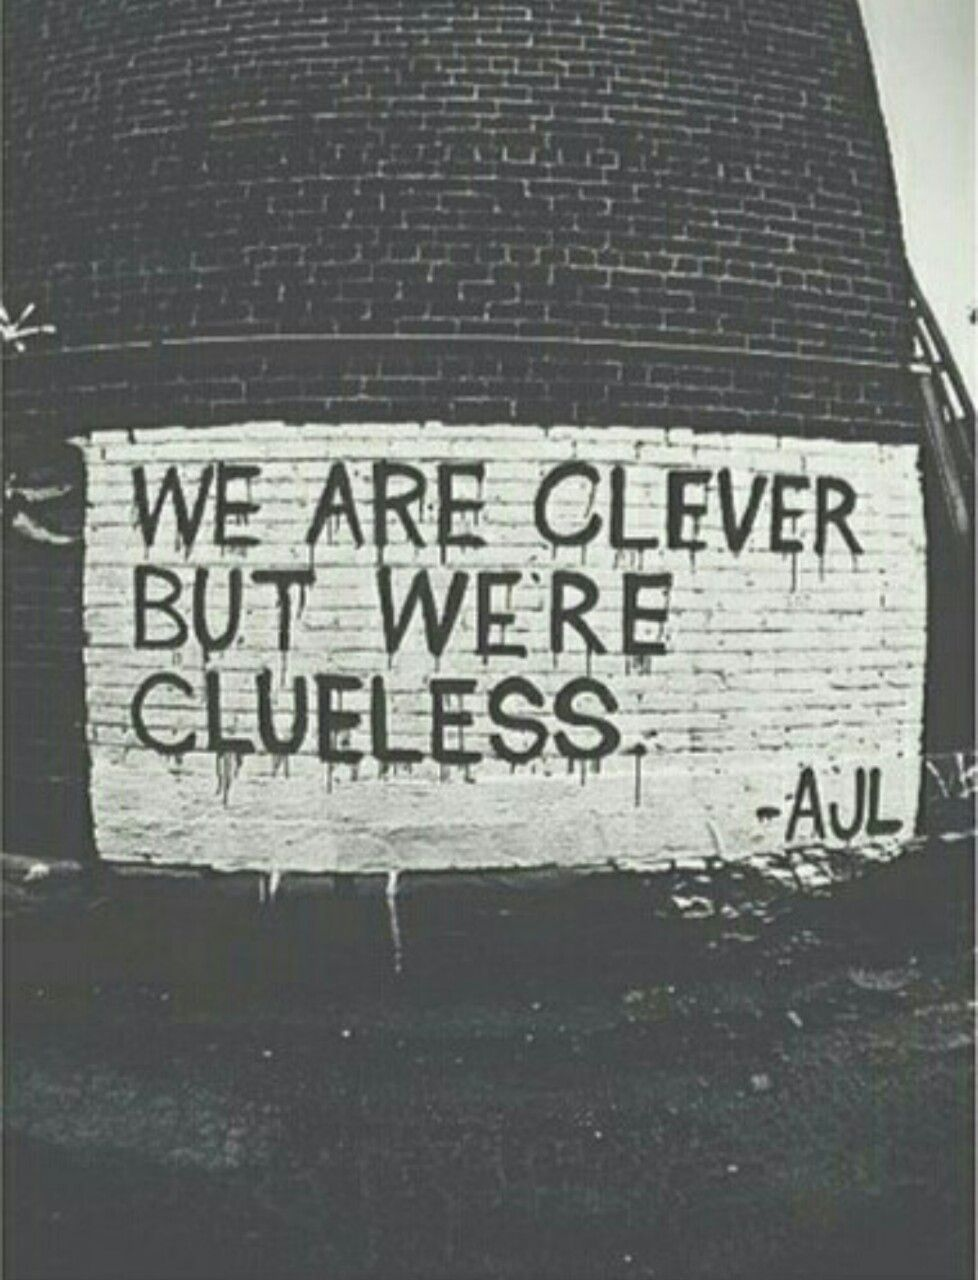 Famous graffiti art quotes - Image Result For Quote About Street Art Street Art Pinterest Street Art